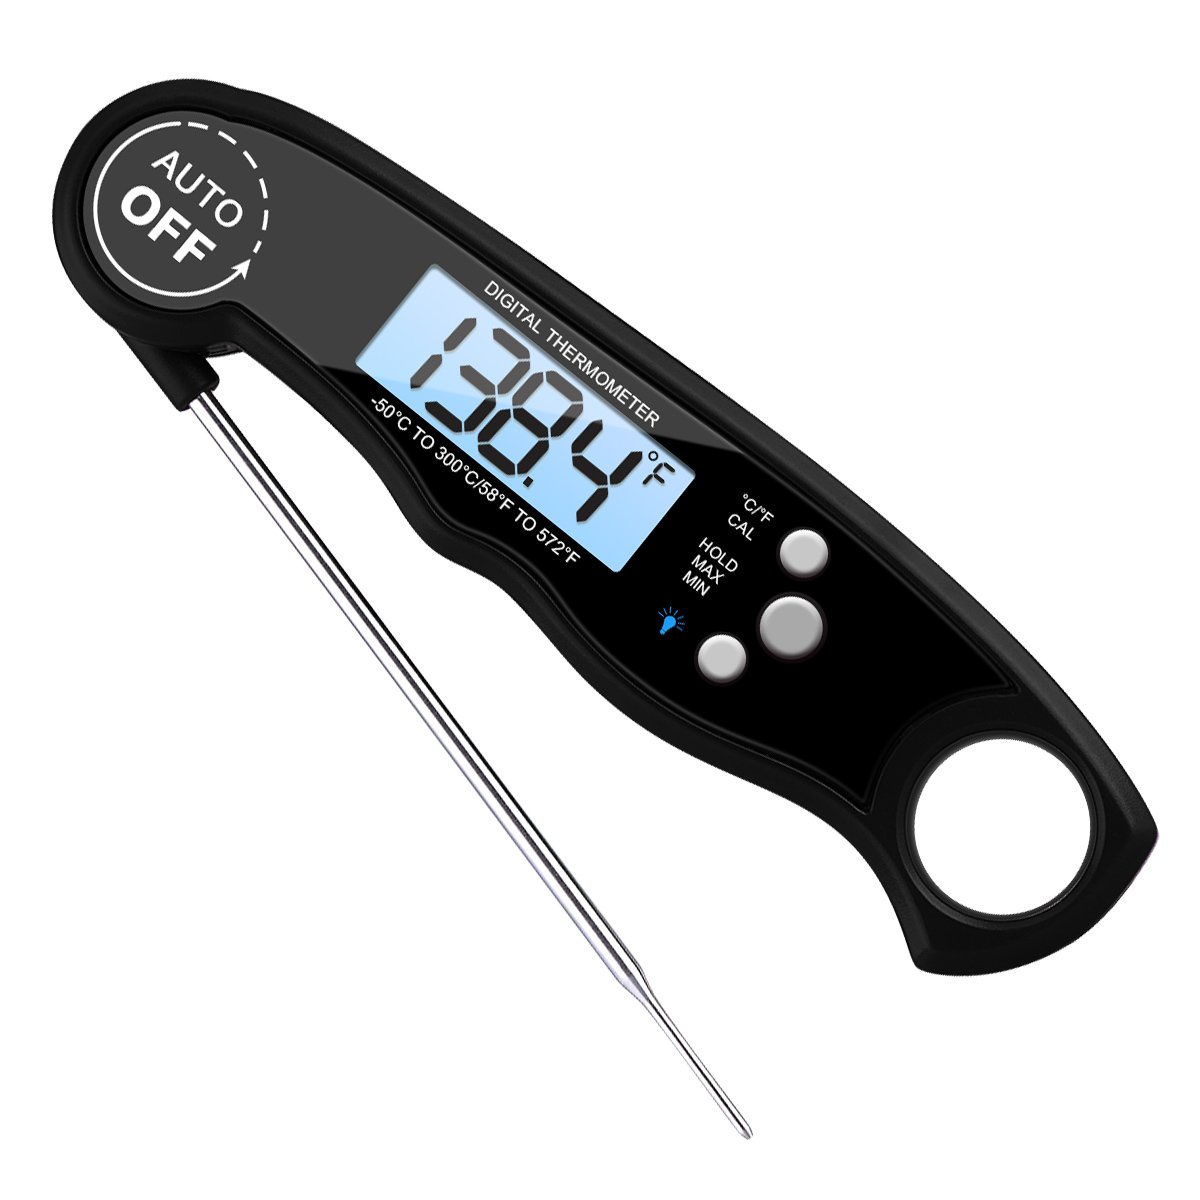 Criacr Digital Food Thermometer, Waterproof Cooking Instant Read Thermometer Electronic Meat Thermometer with Probe for Kitchen Cooking, BBQ, Poultry, Grill Food, Fast & Auto On/Off [Battery Included] Amir UK-KA31